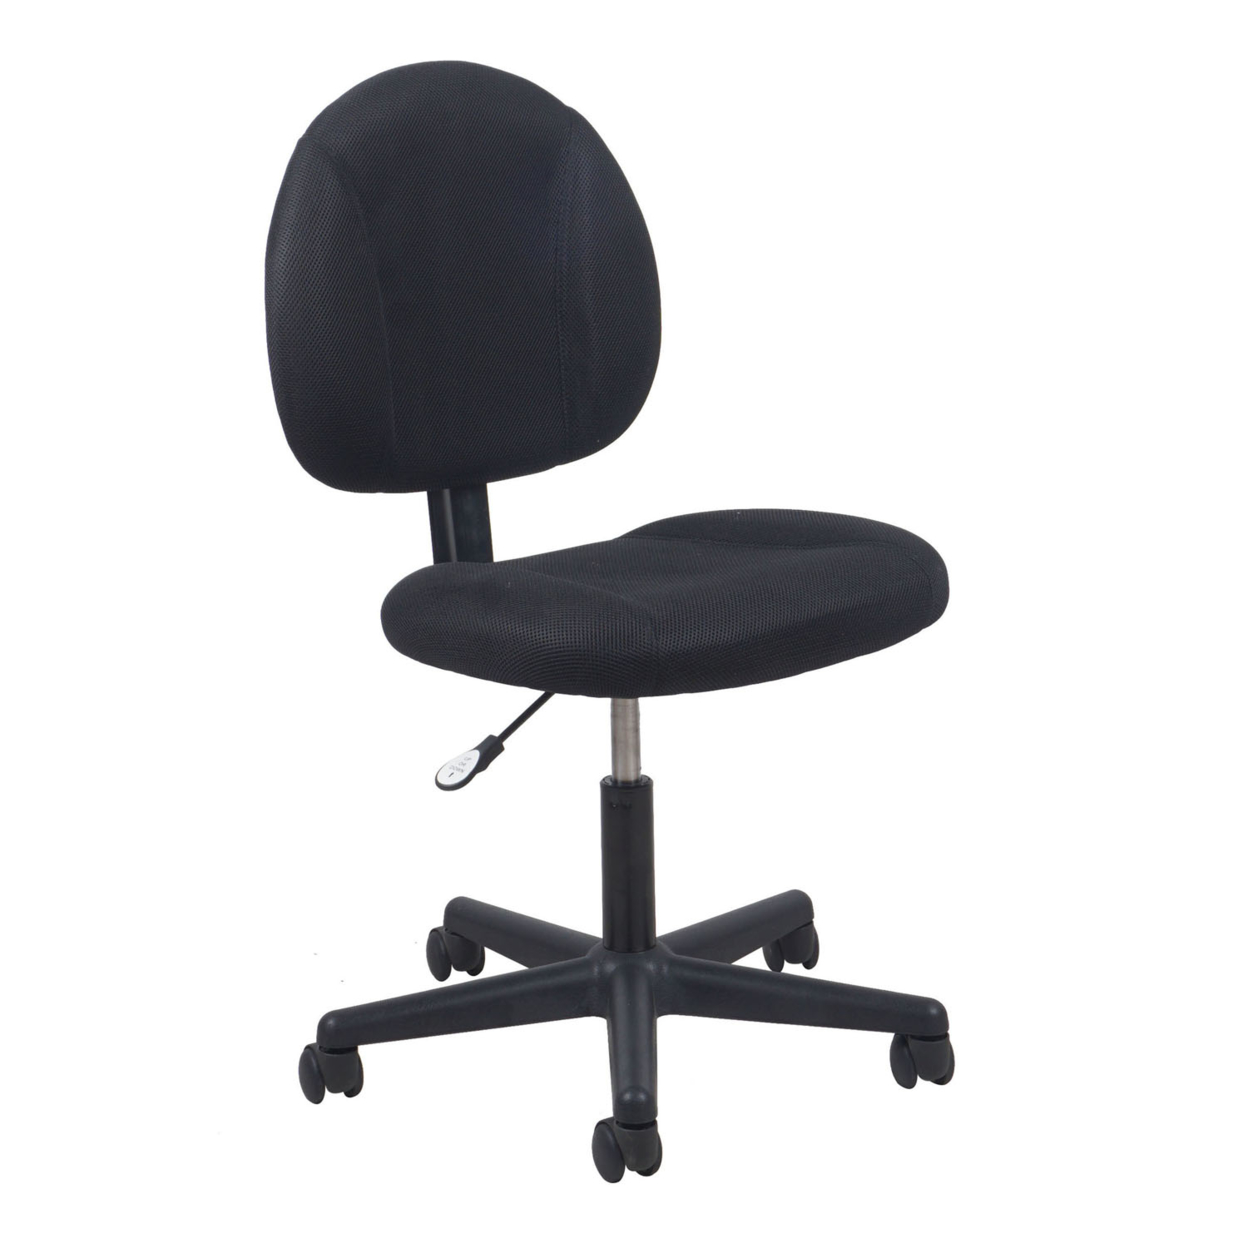 Model ESS-3060 Essentials By OFM Swivel Upholstered Armless